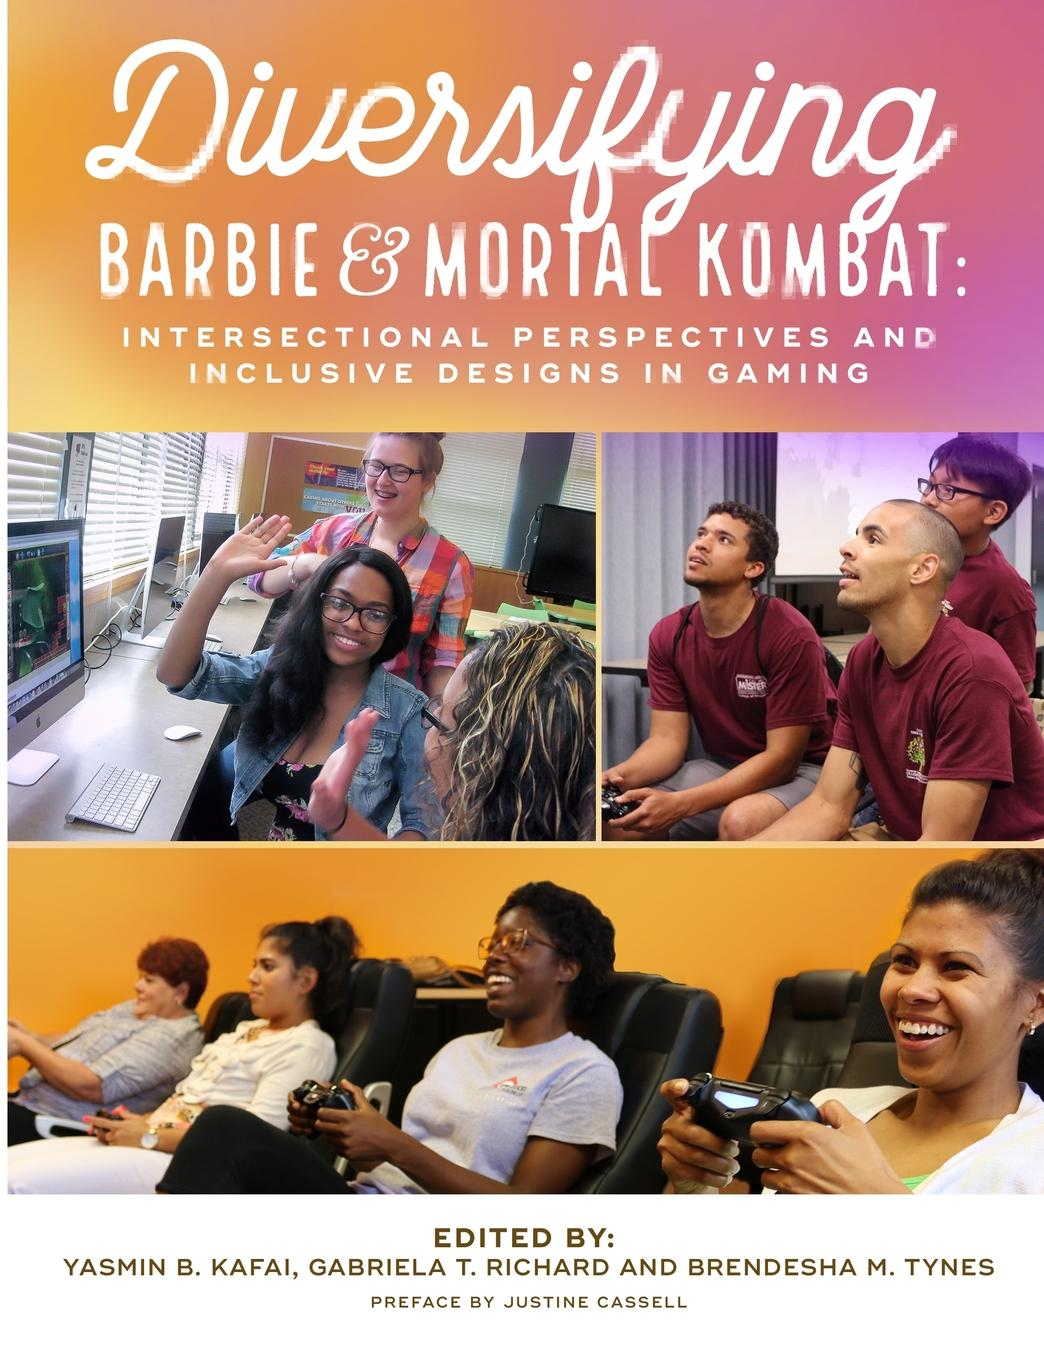 Yasmin B. Kafai, Gabriela T. Richard, Brendesha M. Tynes Diversifying Barbie and Mortal Kombat. Intersectional Perspectives and Inclusive Designs in Gaming gender and knowledge